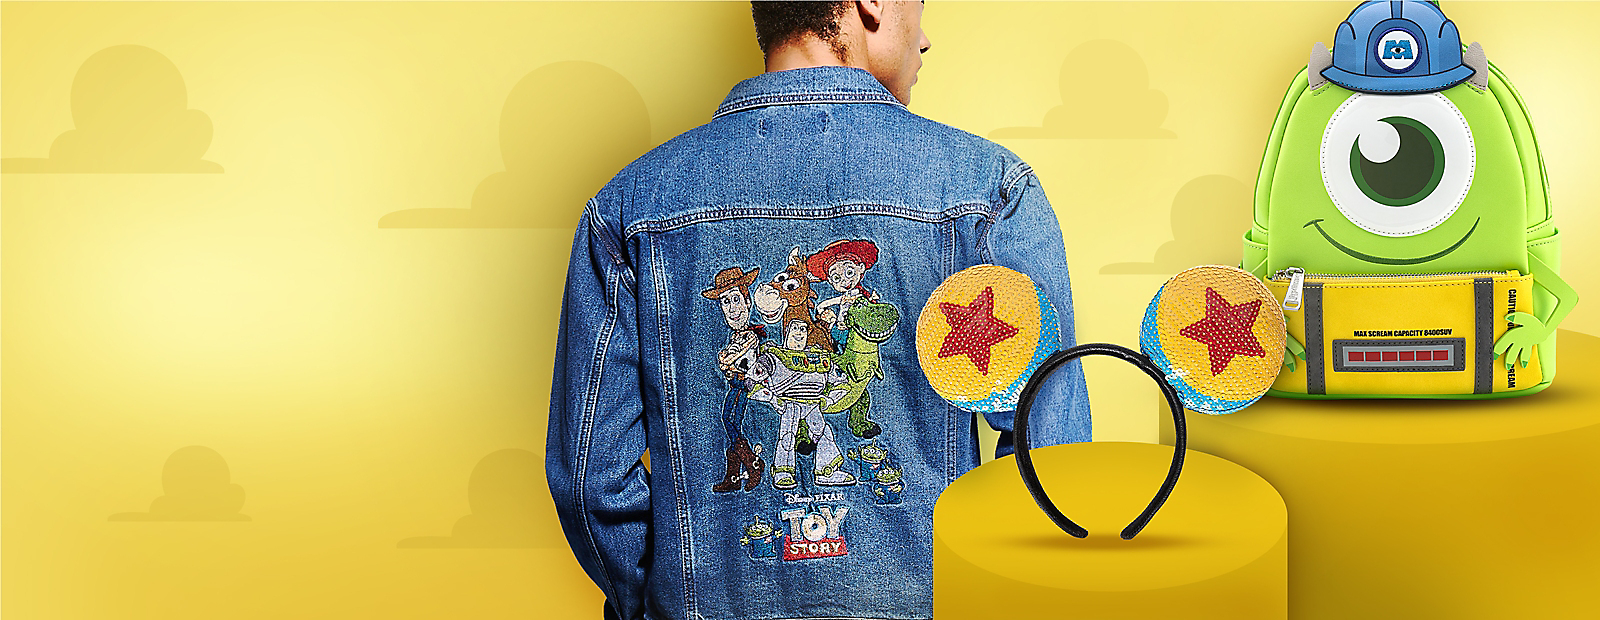 Man in Toy Story denim jacket Pixar cap Mike Wazowski backpack